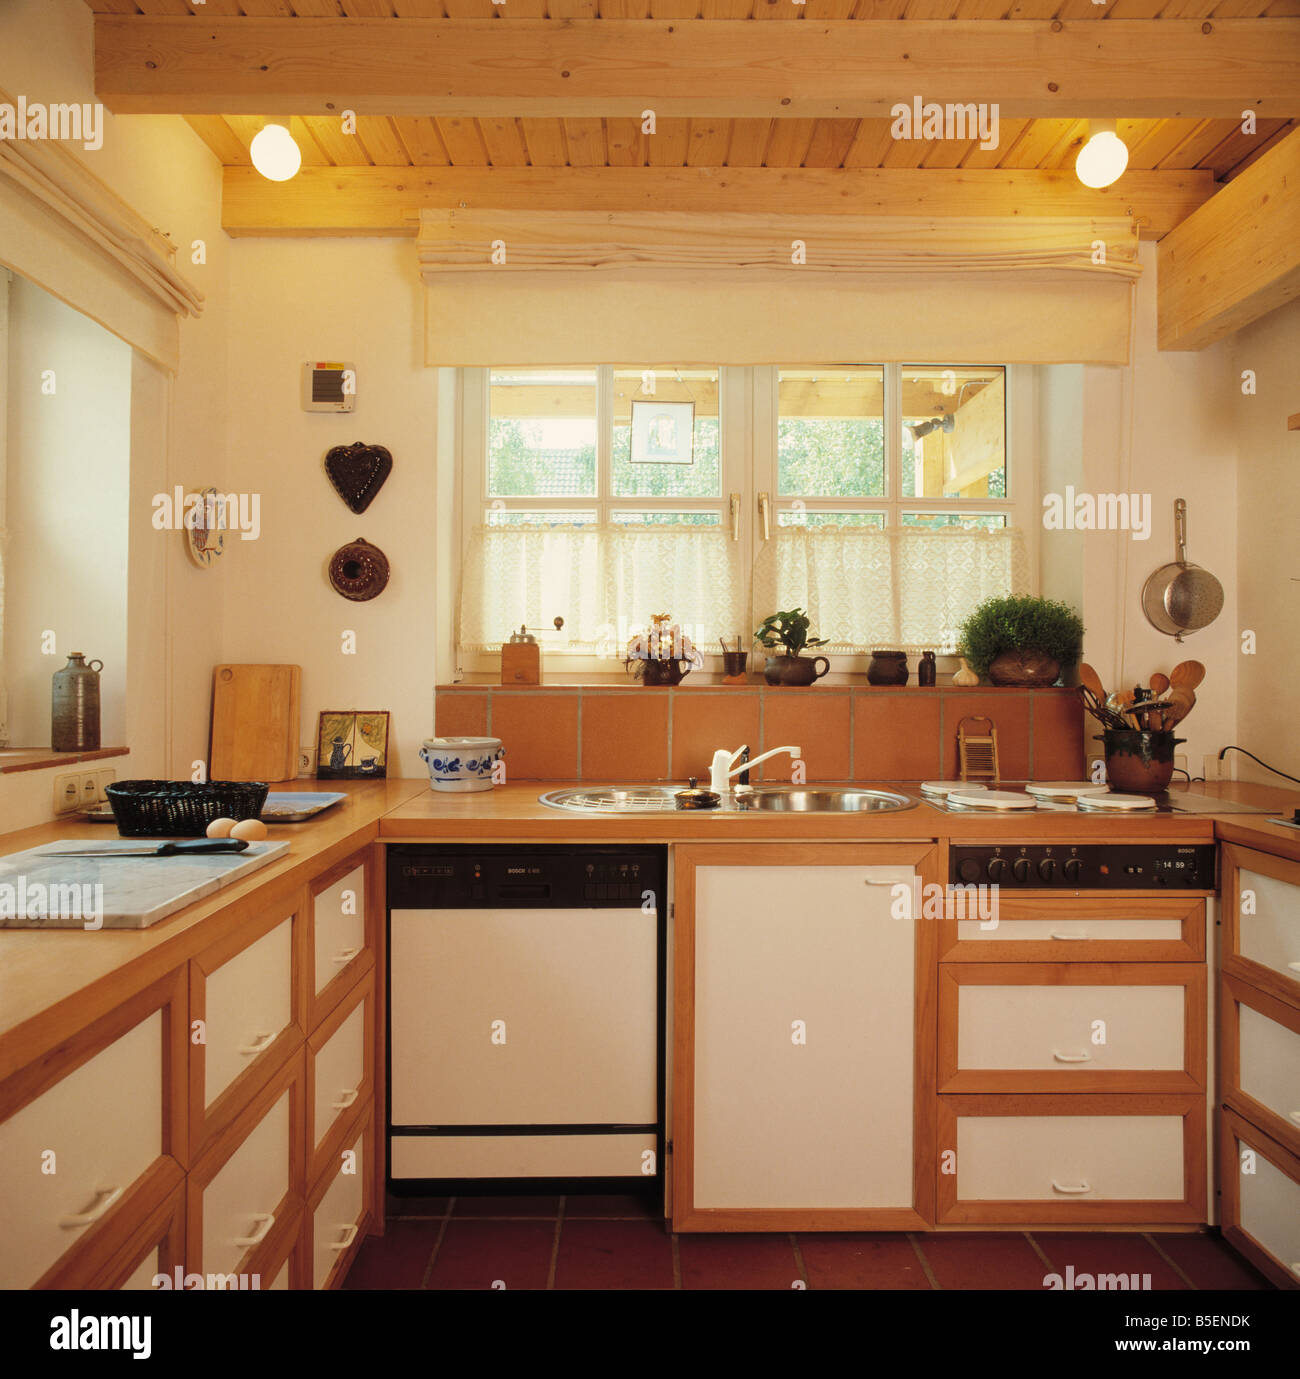 Lighting On Wooden Ceiling In Small Kitchen With Sink And Dishwasher In  Simple Fitted Unit Below